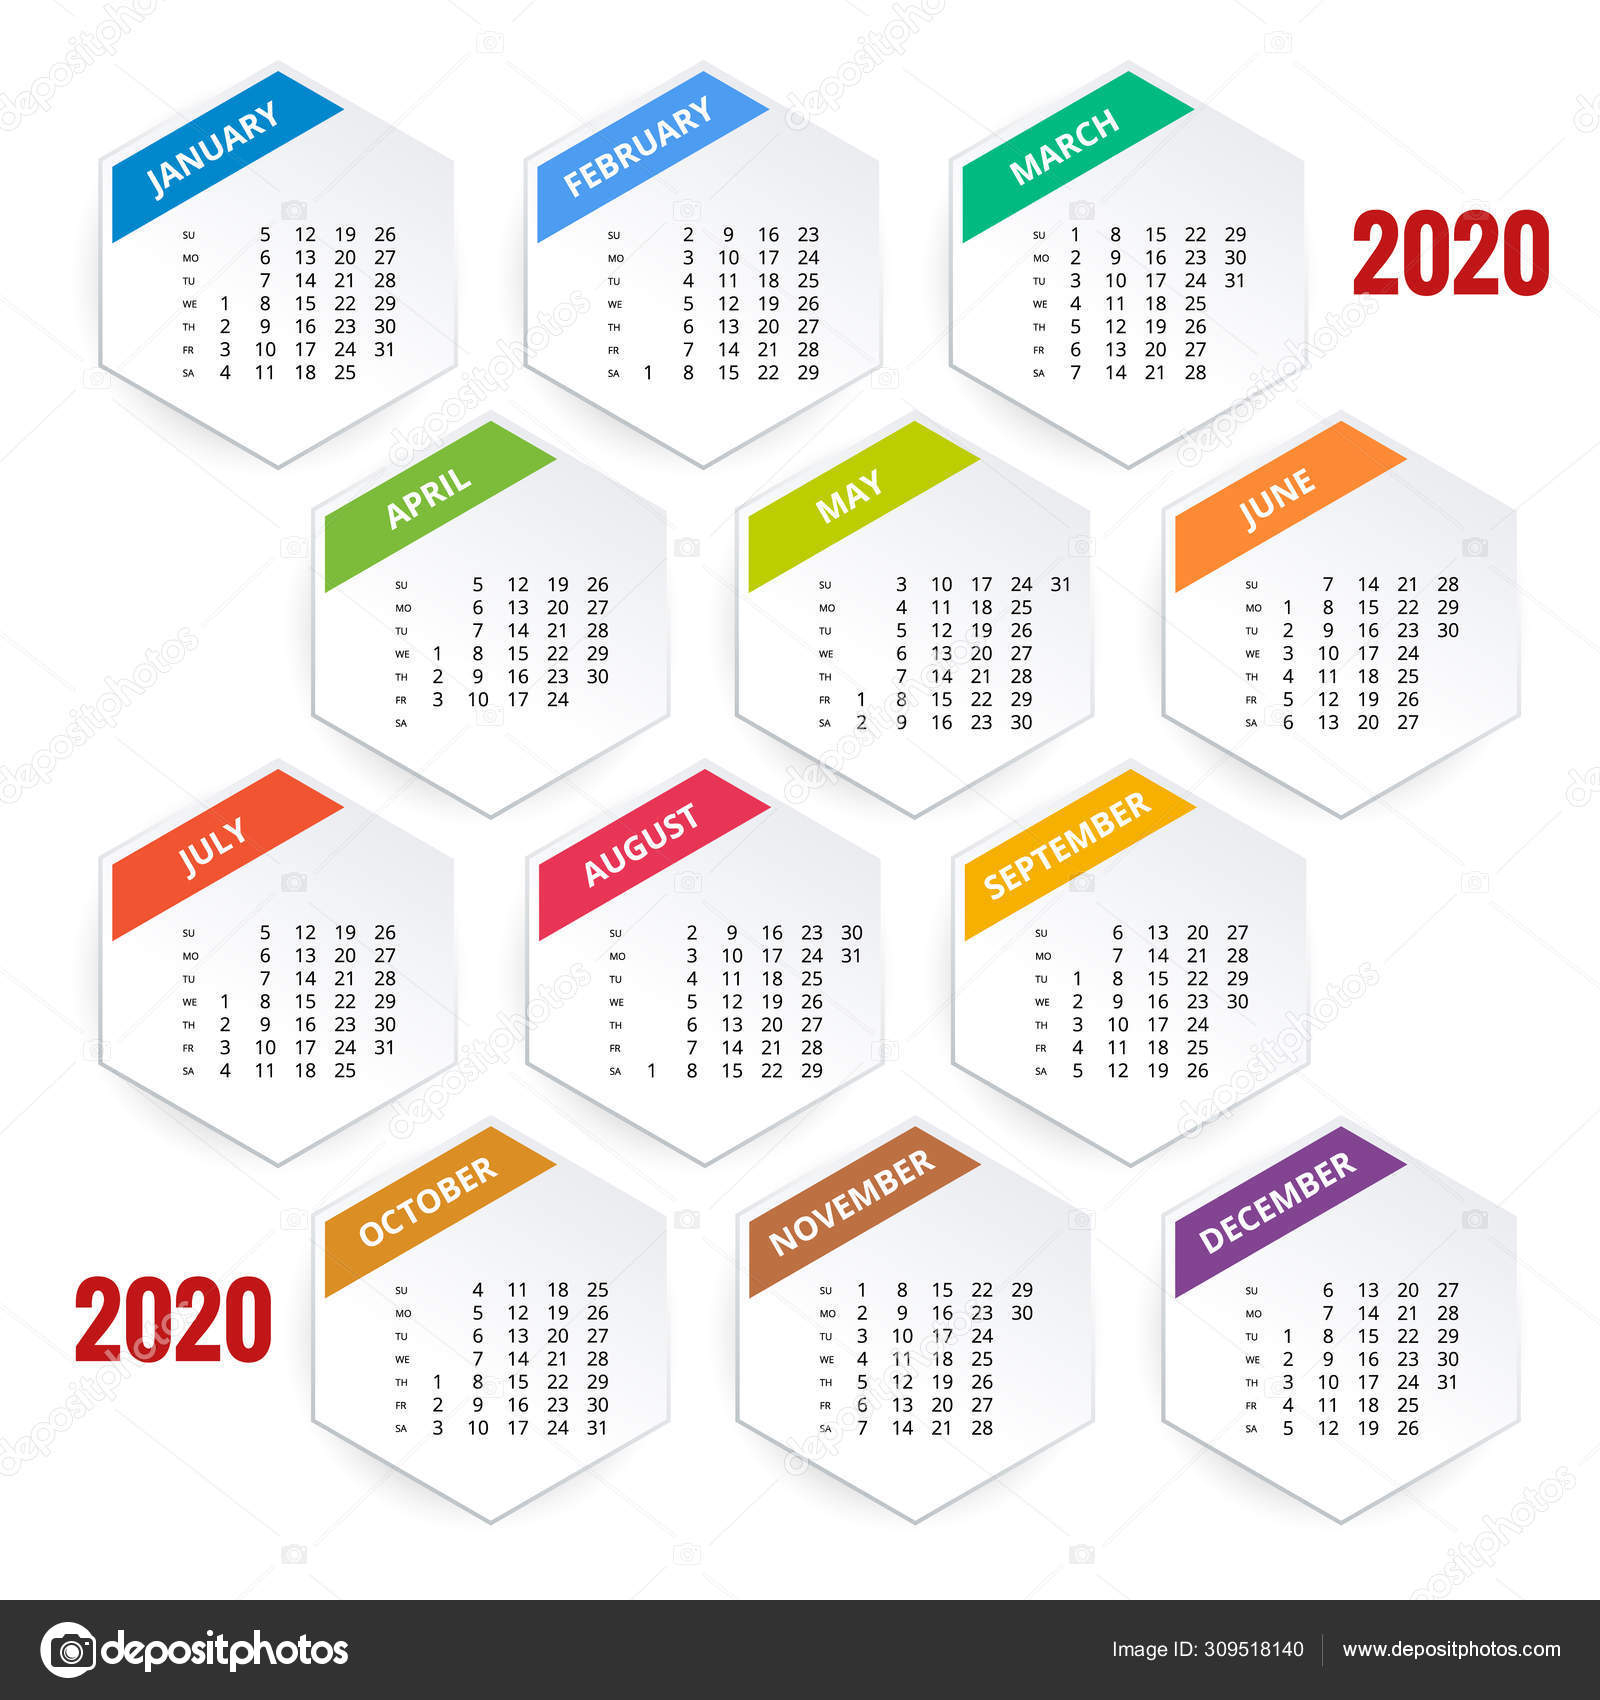 Calendar Of Events Template 2020 - Wpa.wpart.co